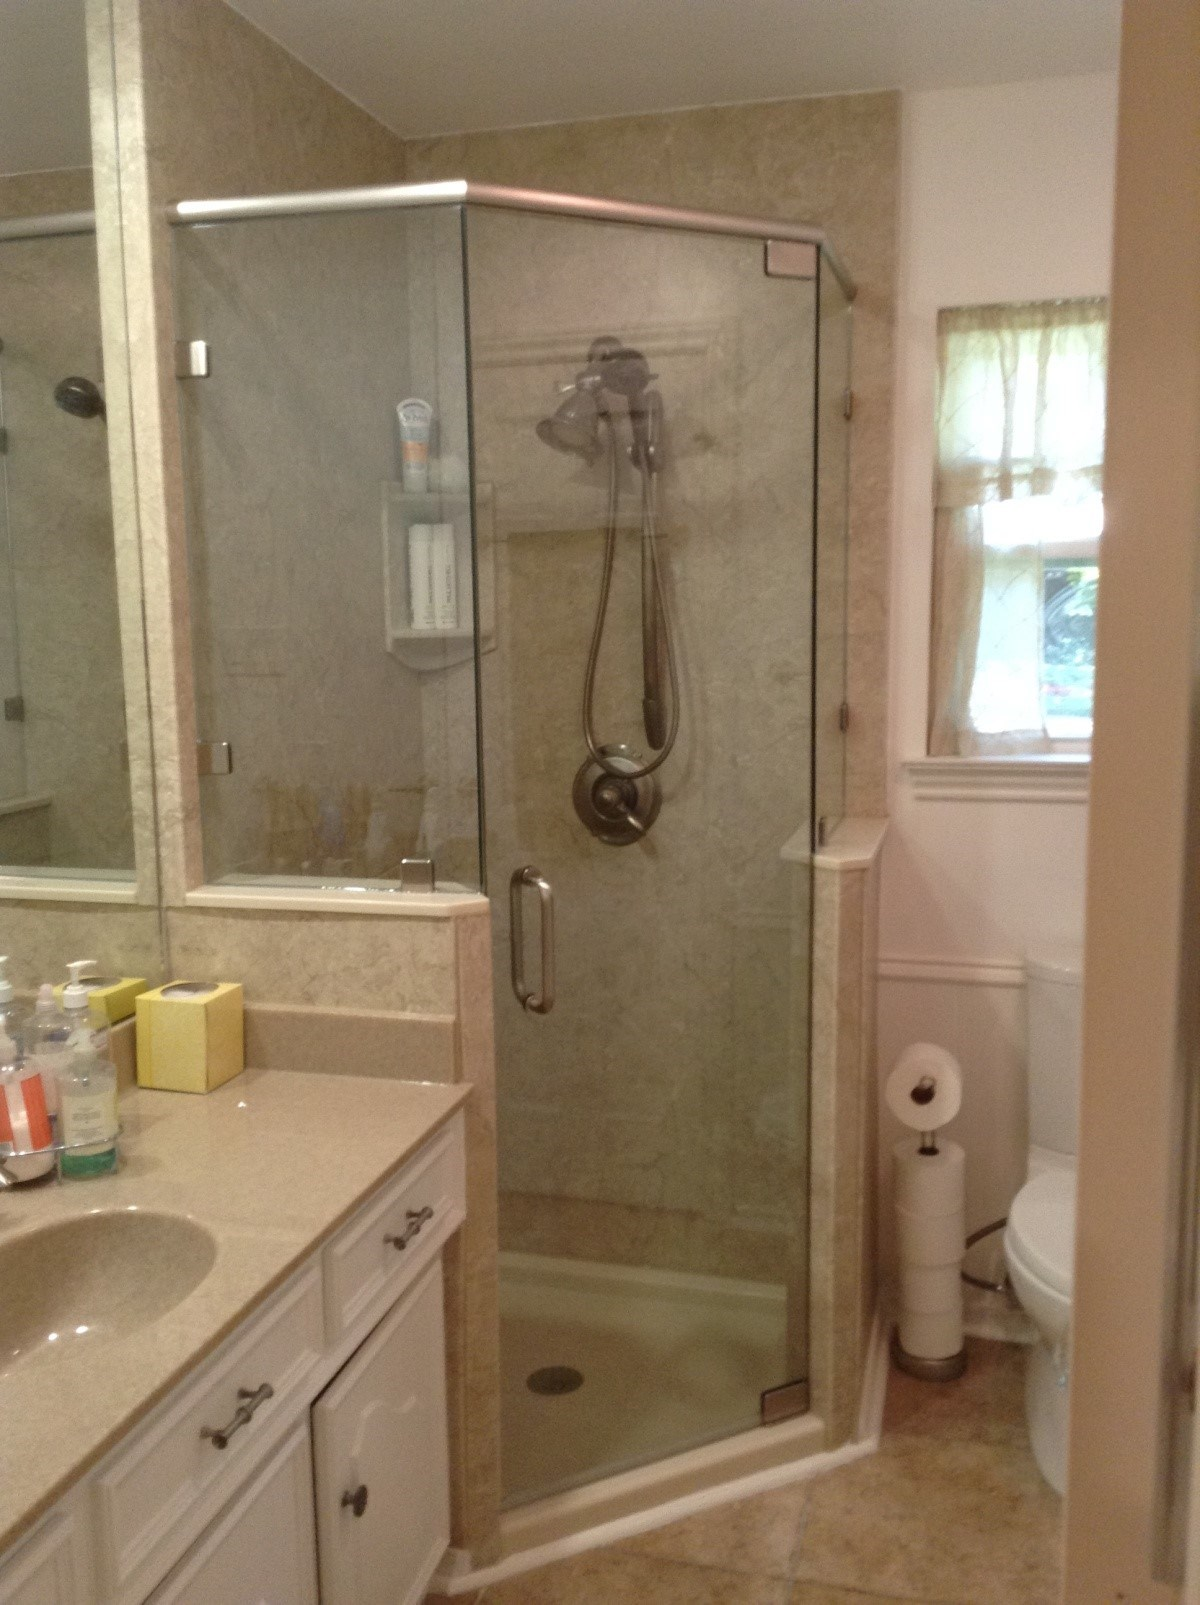 Pictures of new shower door and bathtub